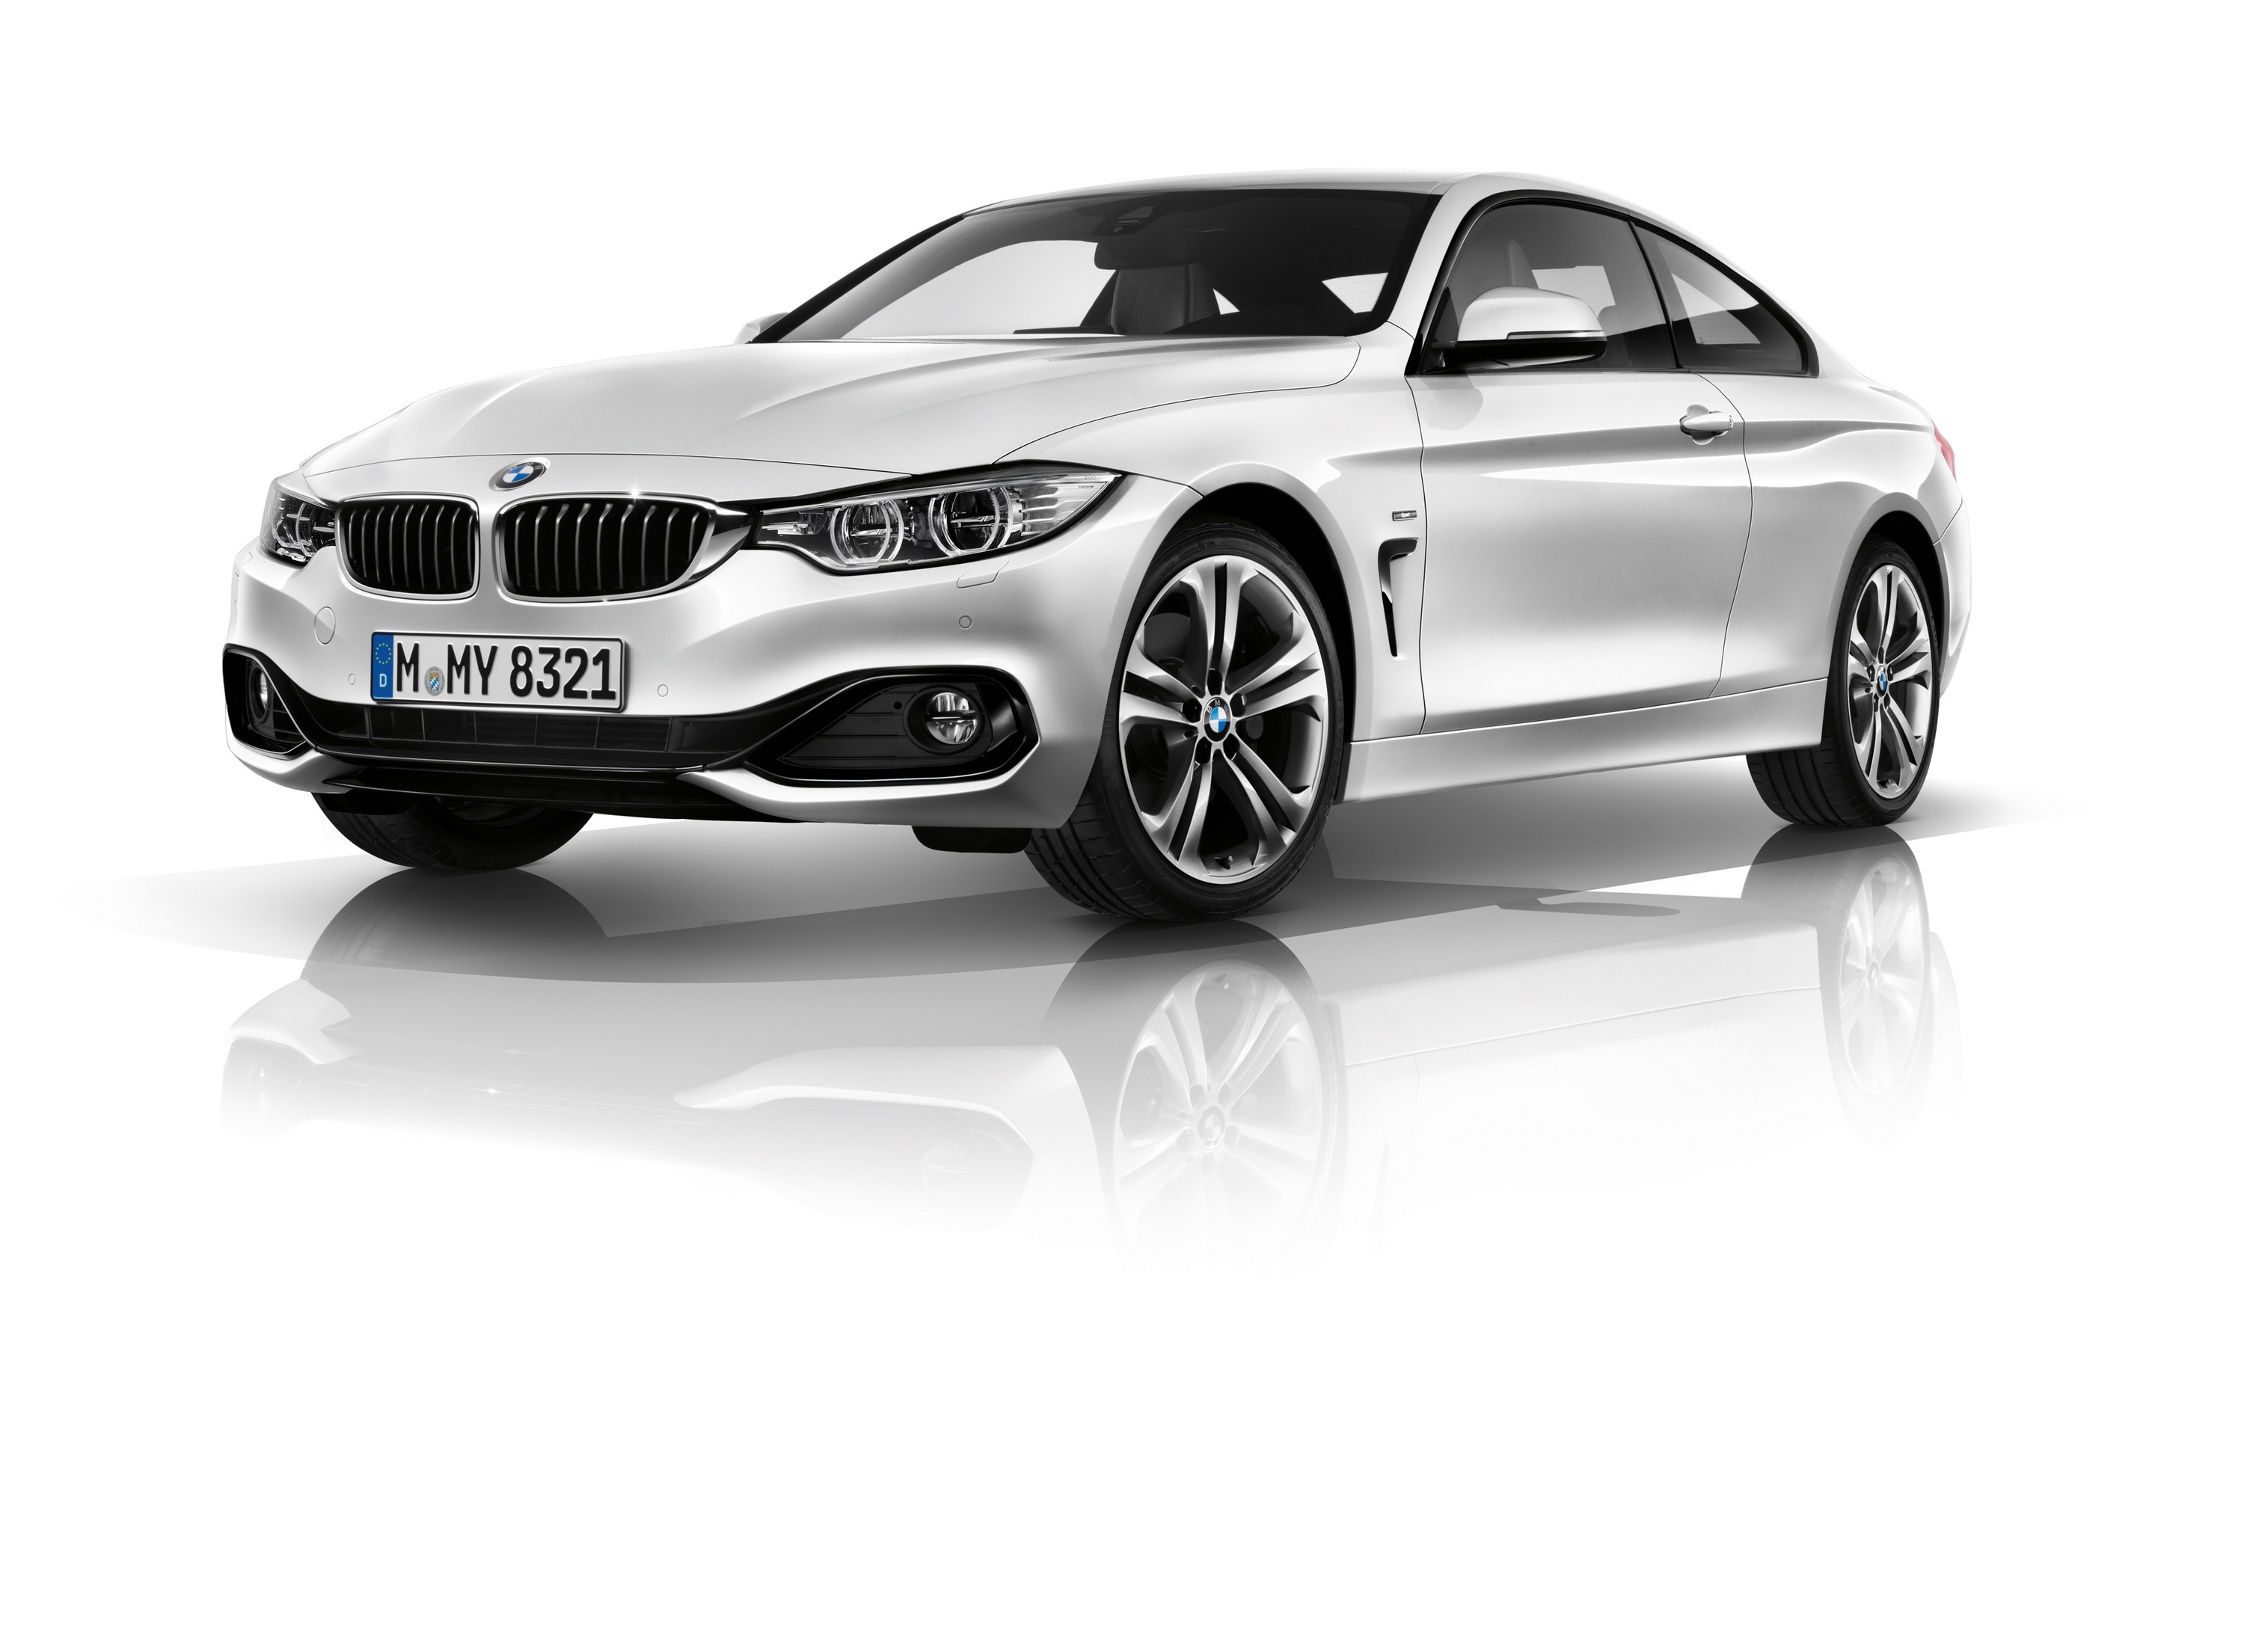 BMW 4 Series Reviews, Specs, Prices, Photos And Videos   Top Sd Sweet Home D Plan Coupe on vastu plans, architects plans, luxury plans, story house plans, 3 storey house plans, bedroom plans,